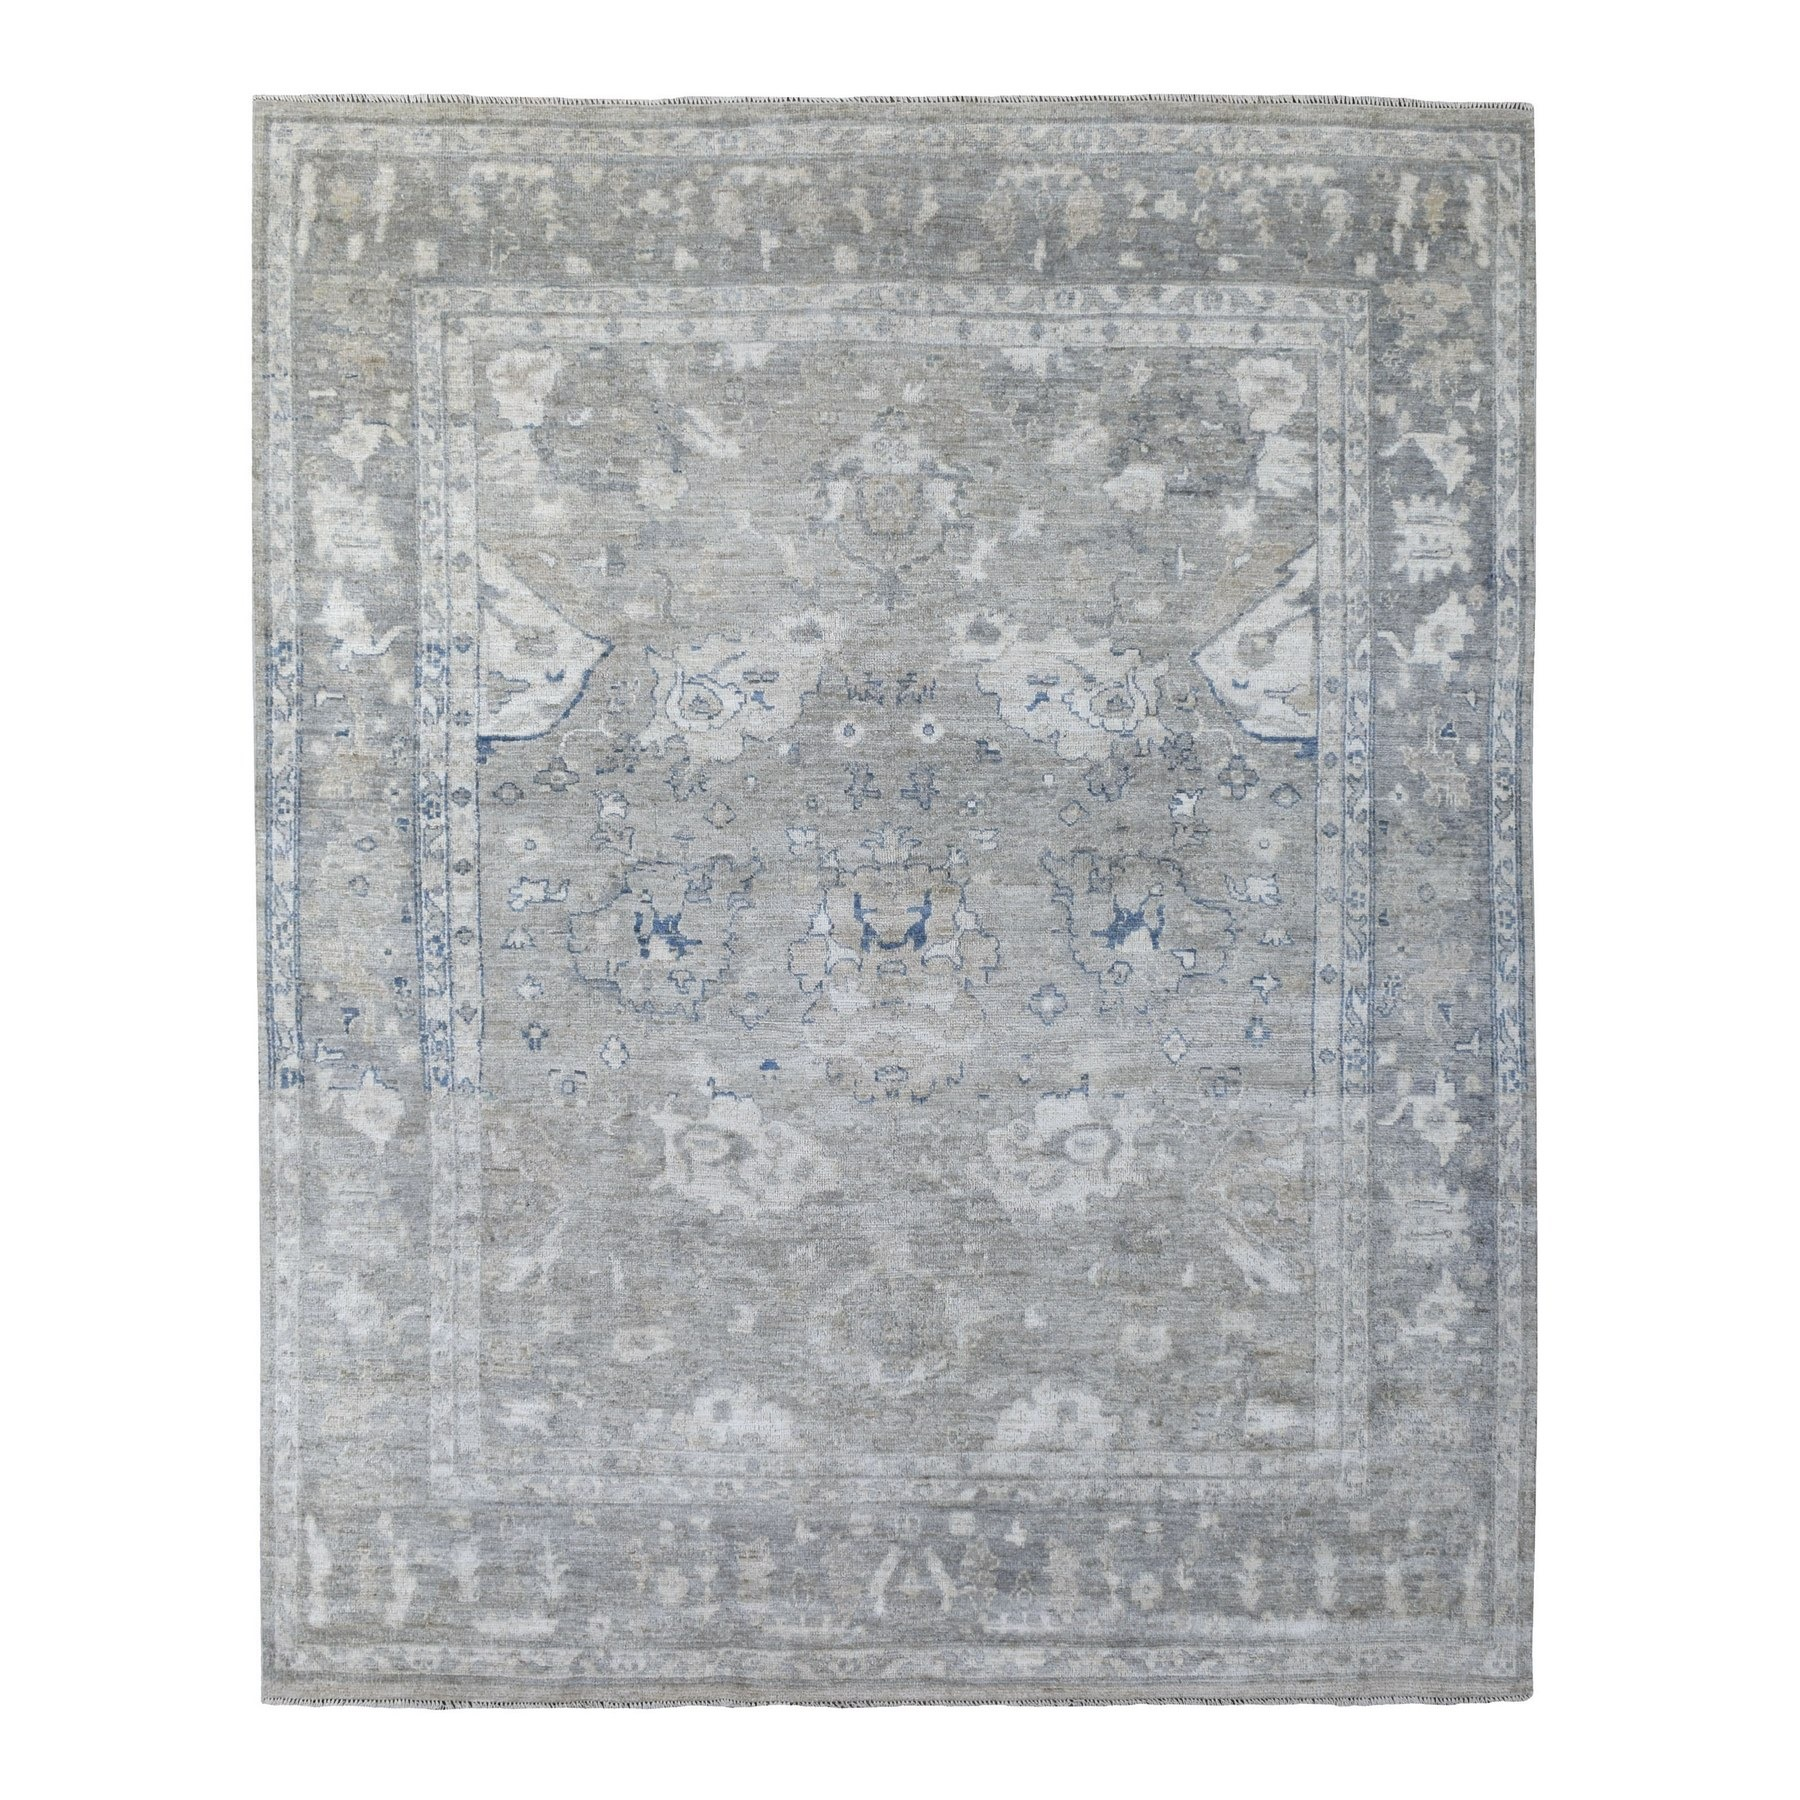 "8'x9'9"" Hand Woven Light Gray With Soft Colors Pliable Wool Angora Oushak Oriental Rug"